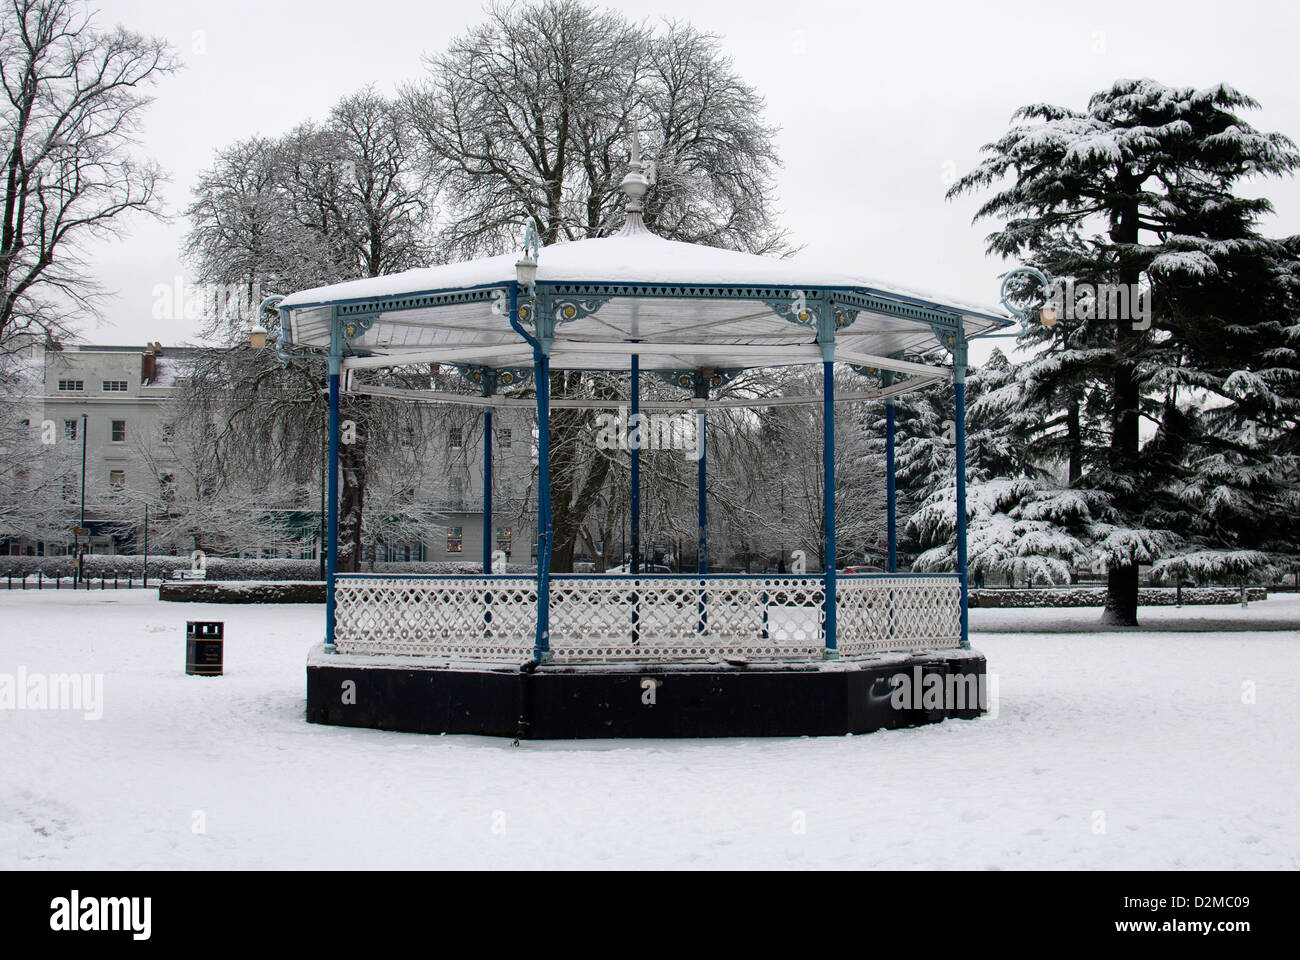 Bandstand in Pump Room Gardens in winter, Leamington Spa, Warwickshire, UK Stock Photo